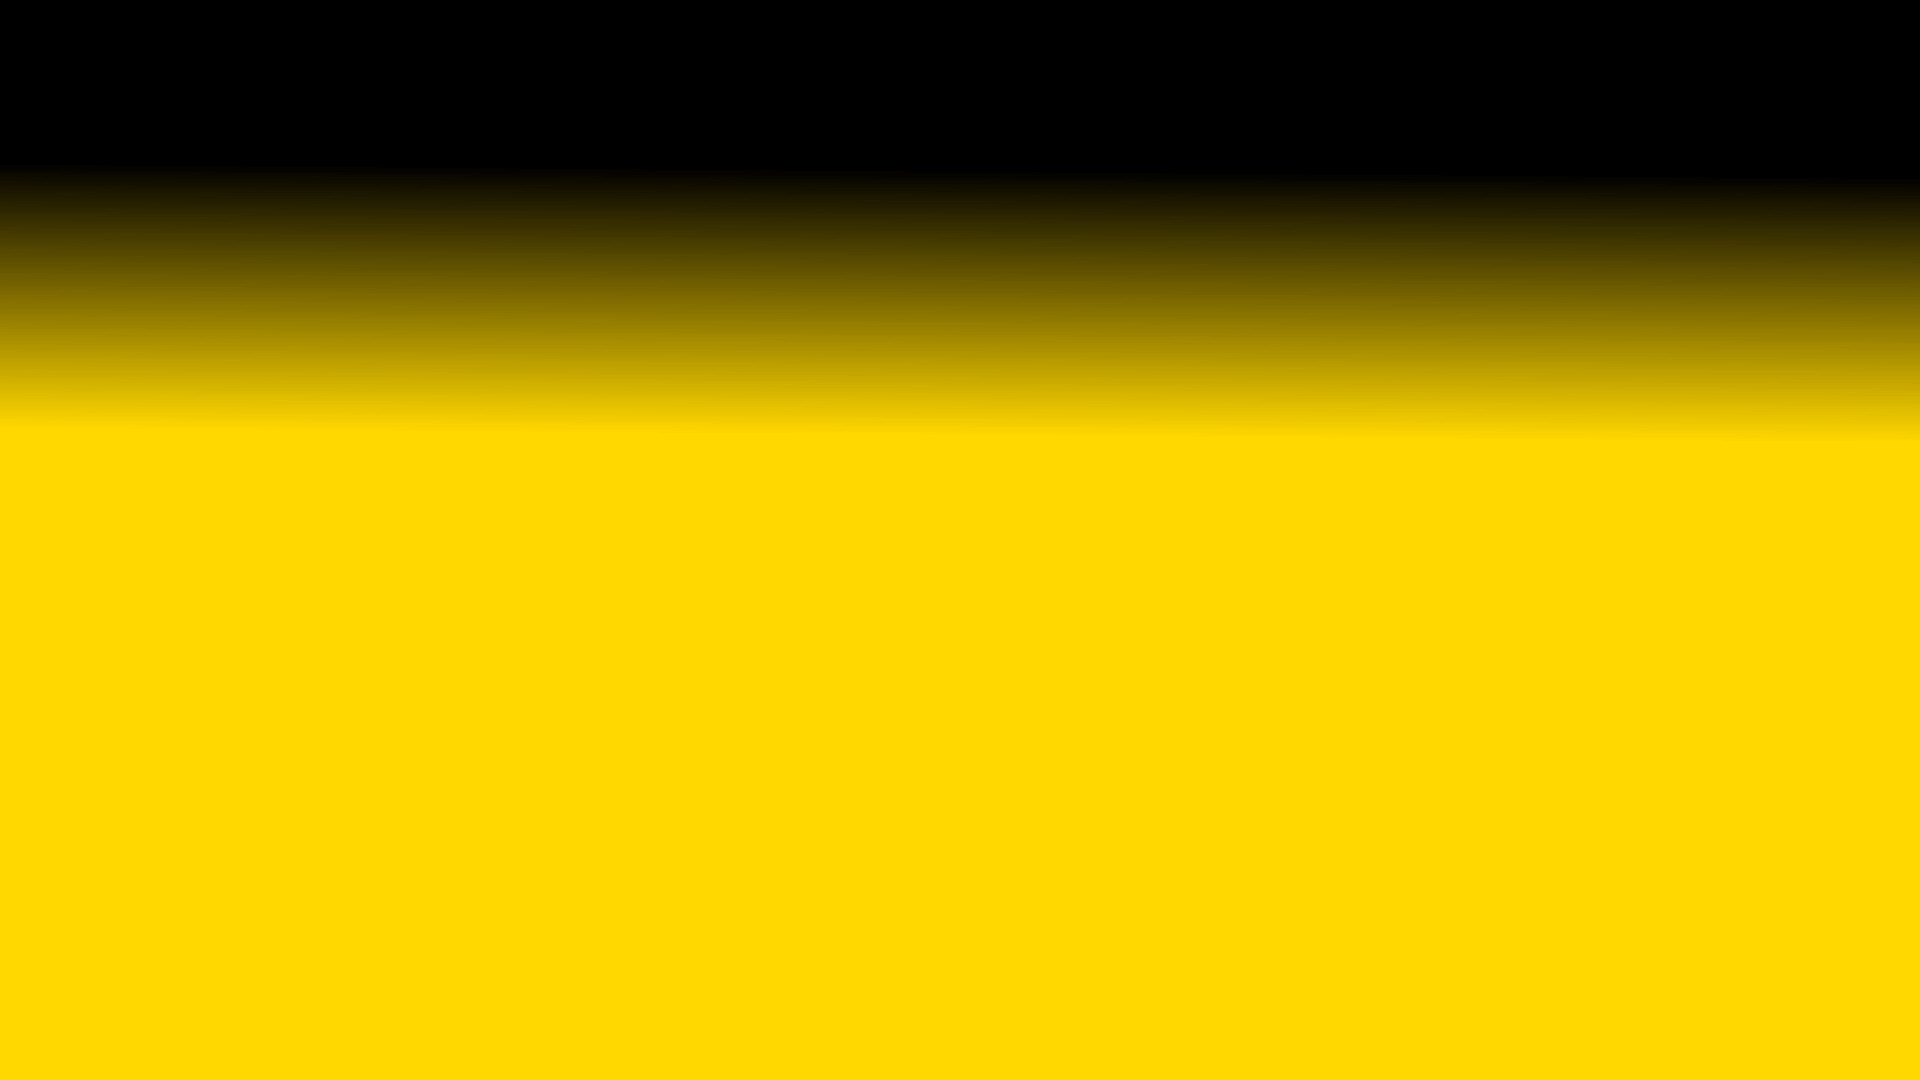 Black and Yellow background ·① Download free stunning ...